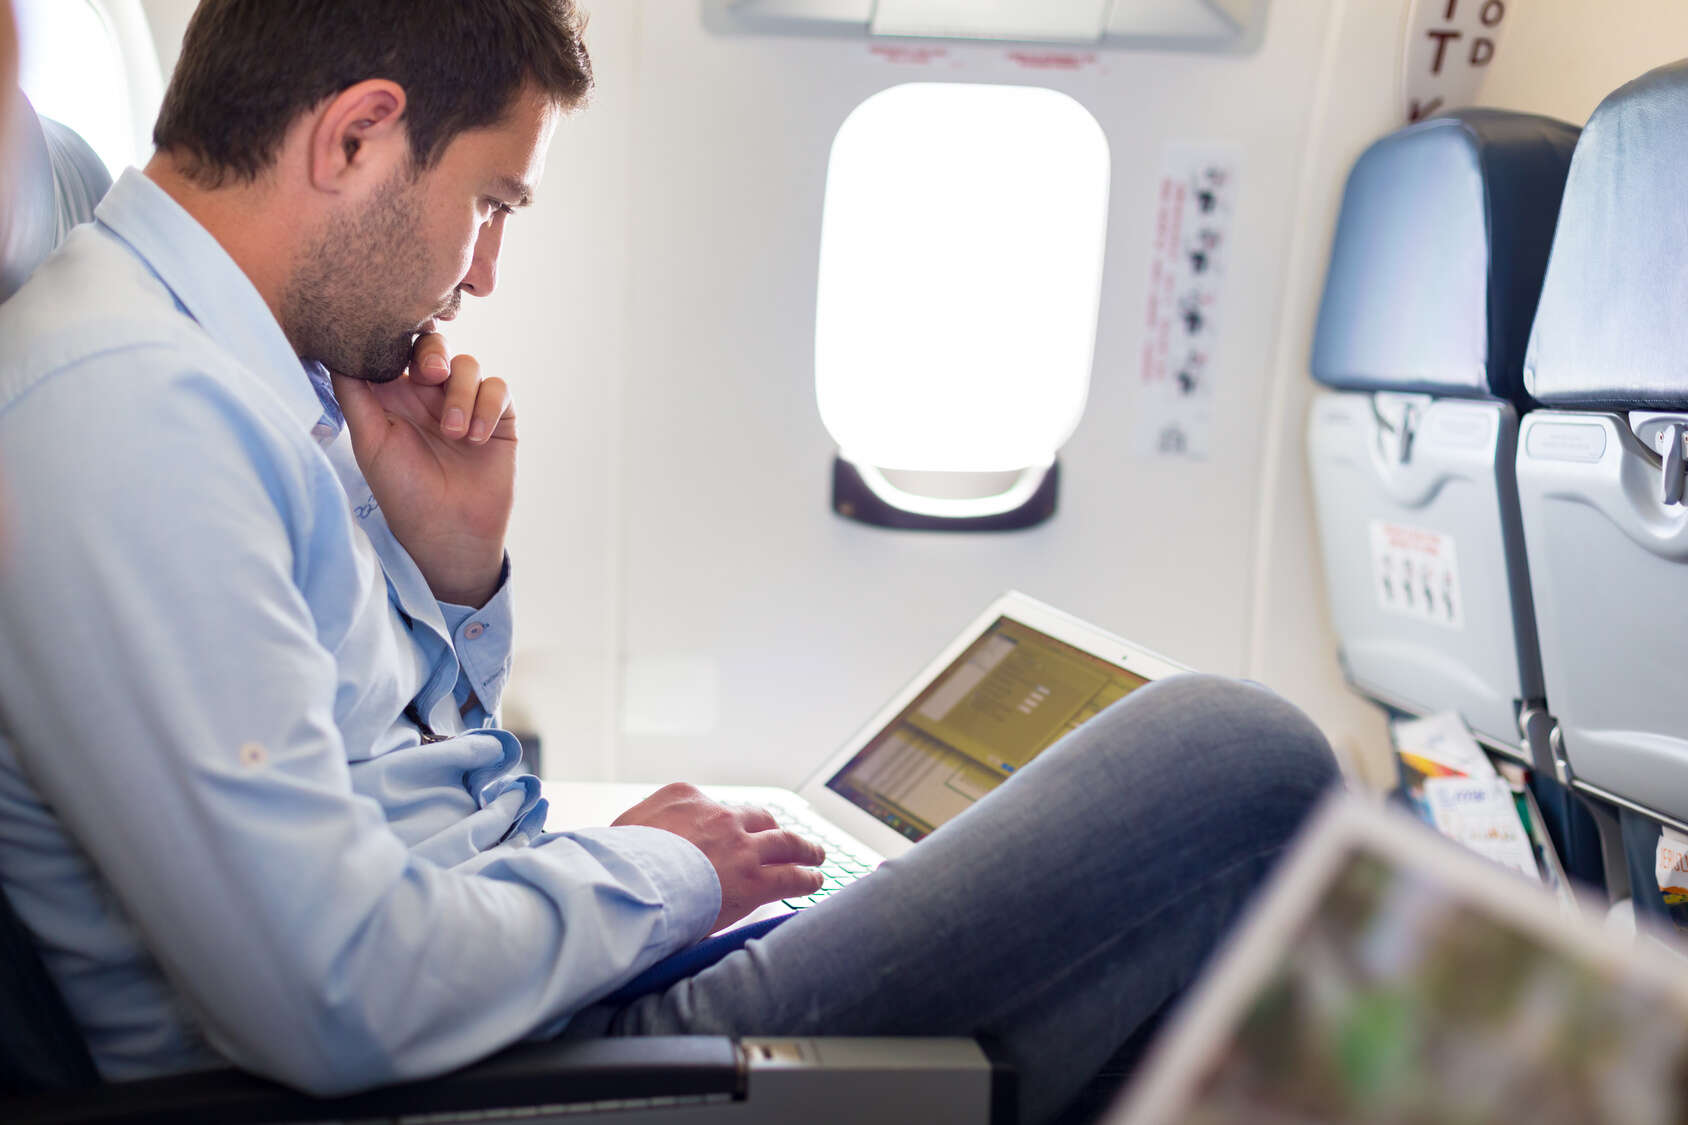 Air Canada and WestJet Rolling Out More In-Flight Wi-Fi Access